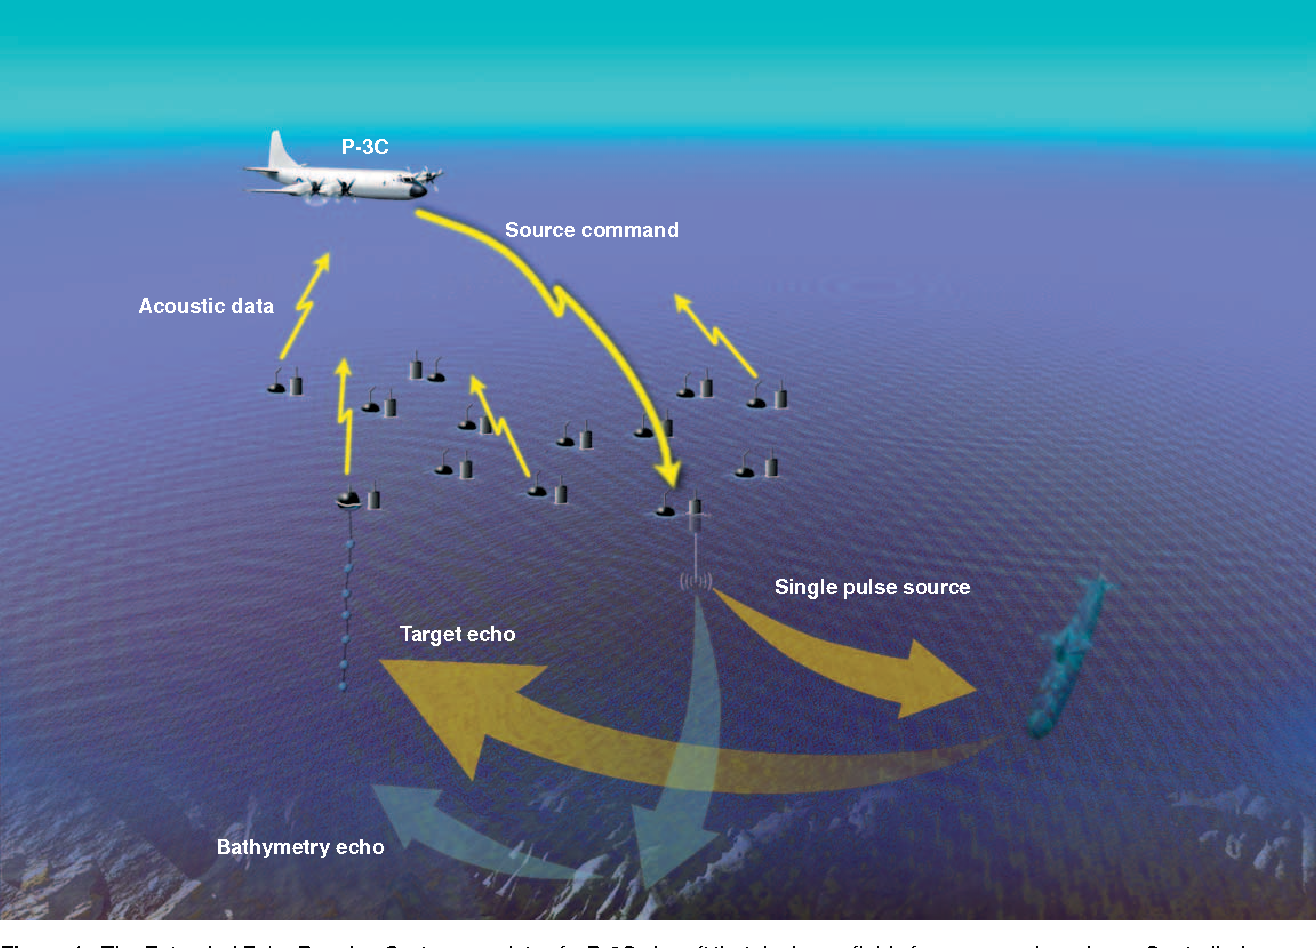 Figure 1. The Extended Echo Ranging System consists of a P-3C aircraft that deploys a field of sources and receivers. Controlled source energy is intended to acoustically illuminate the target to generate a detectable target echo.